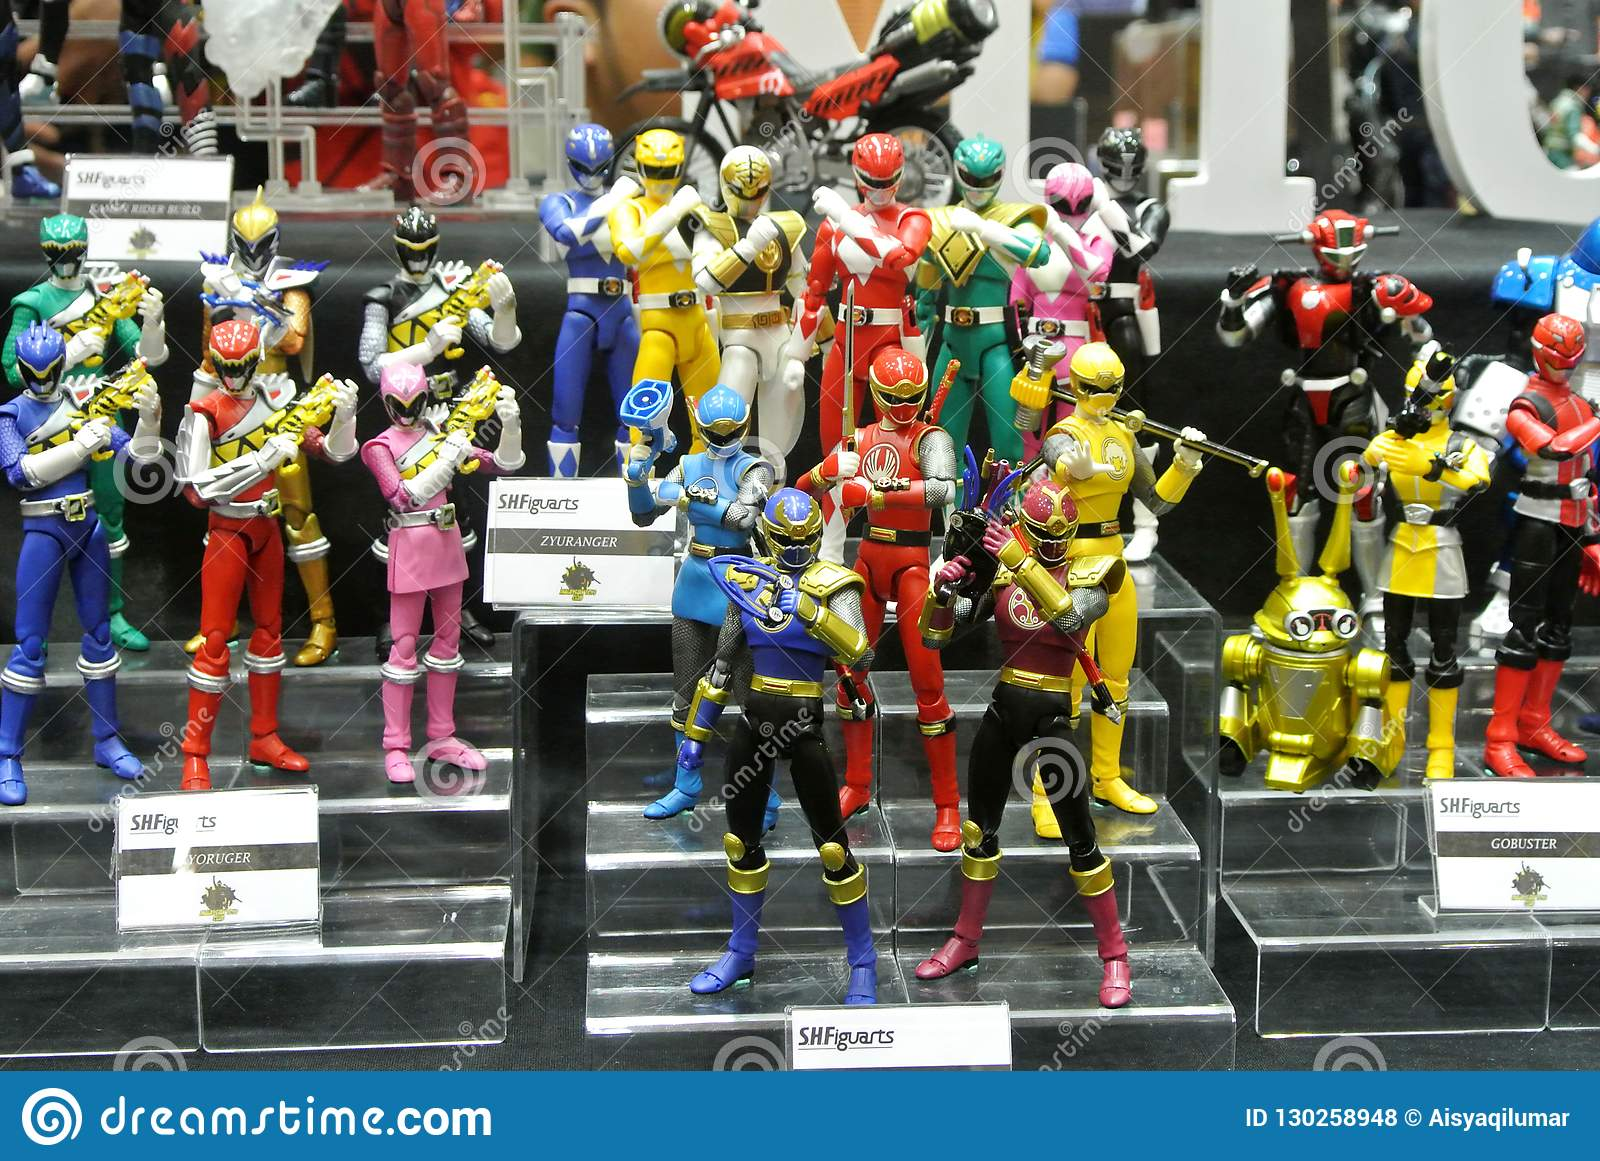 Selected focused of fictional character action figure from American kids TV series Power Rangers.